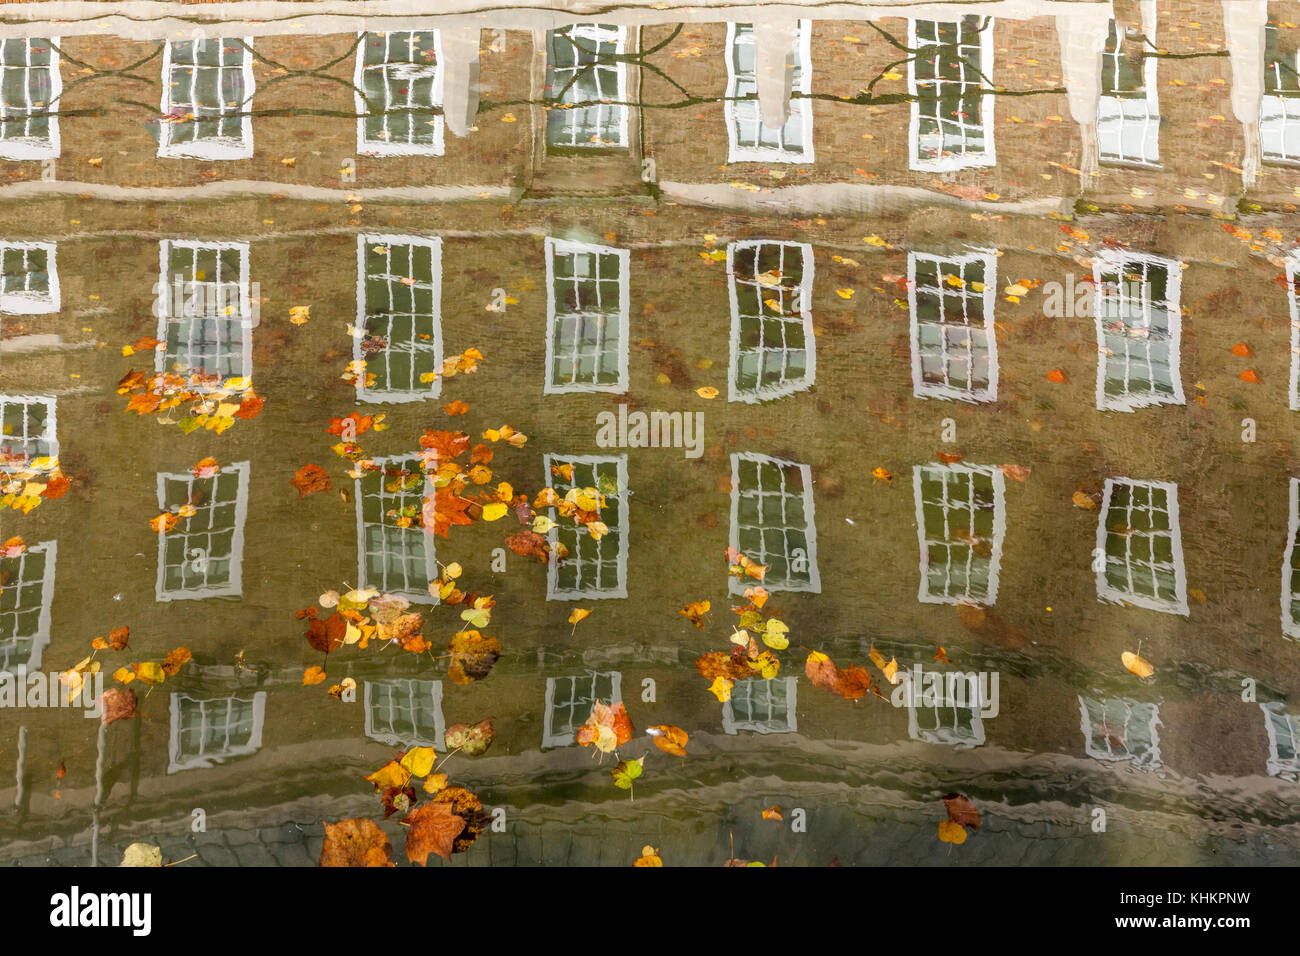 The windows of Bristol City Hall reflected in the moat water, with russet, gold, brown and yellow leaves floating - Stock Image